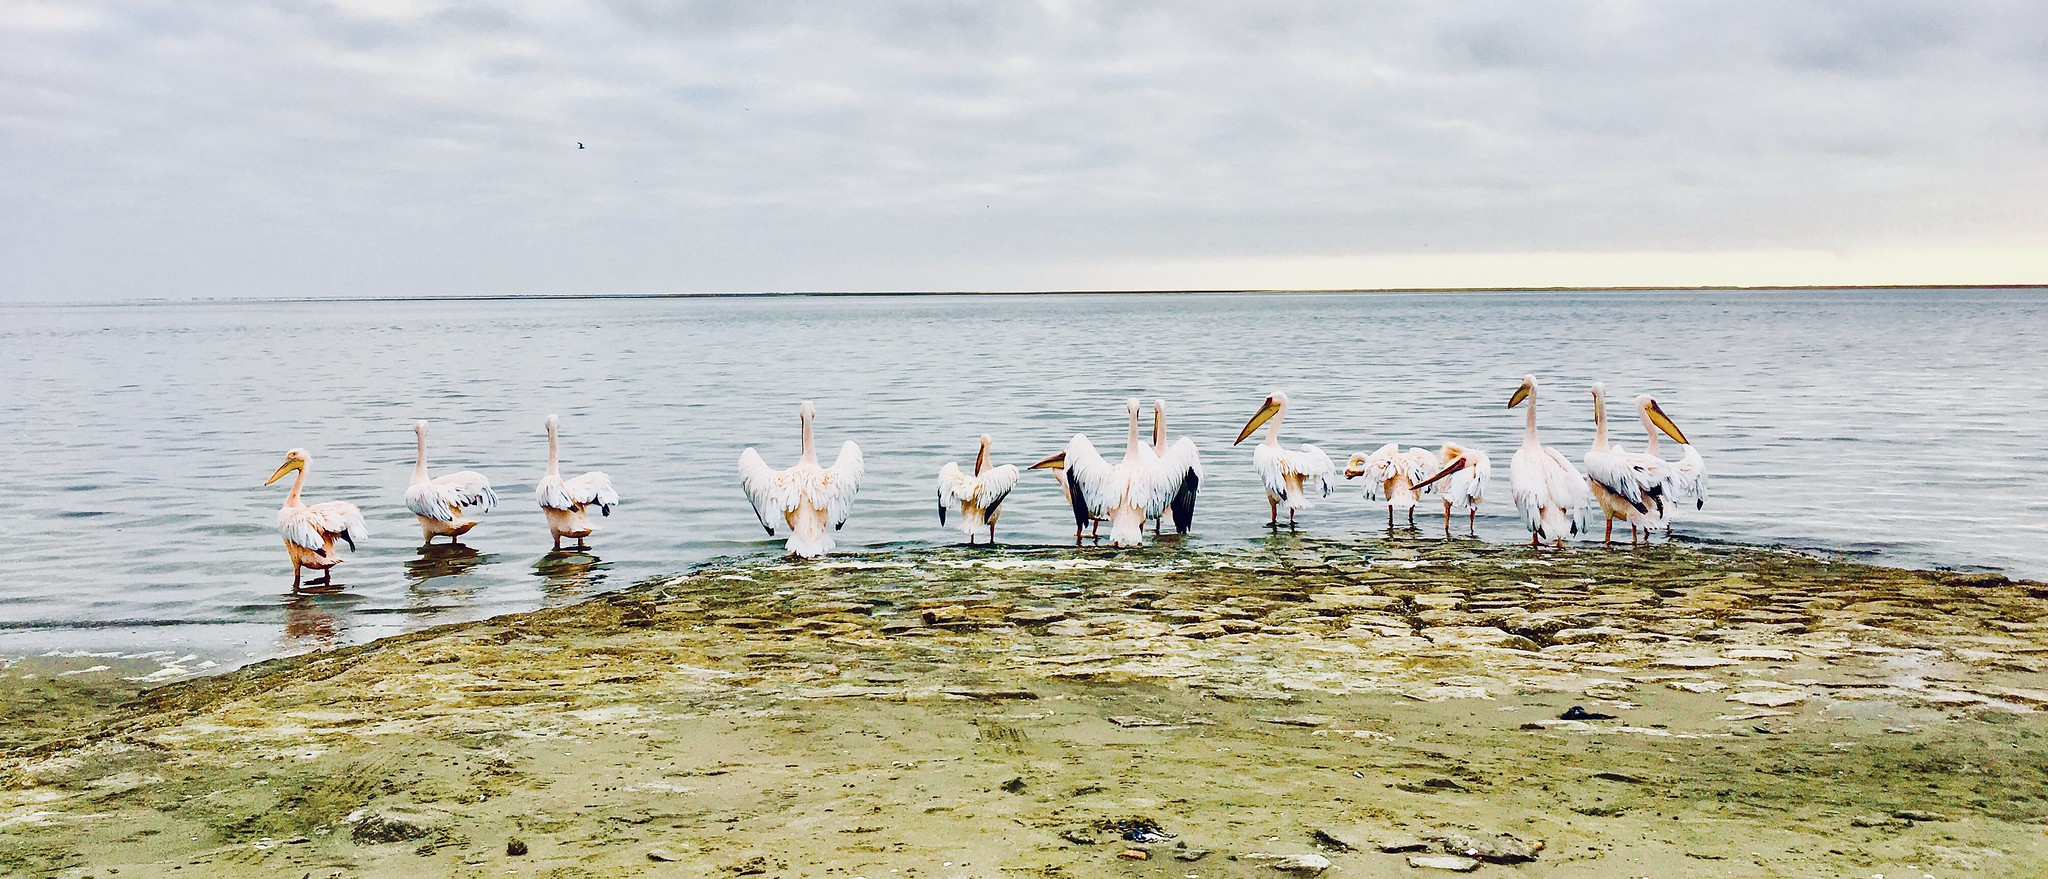 Pelicans at Walvis Bay